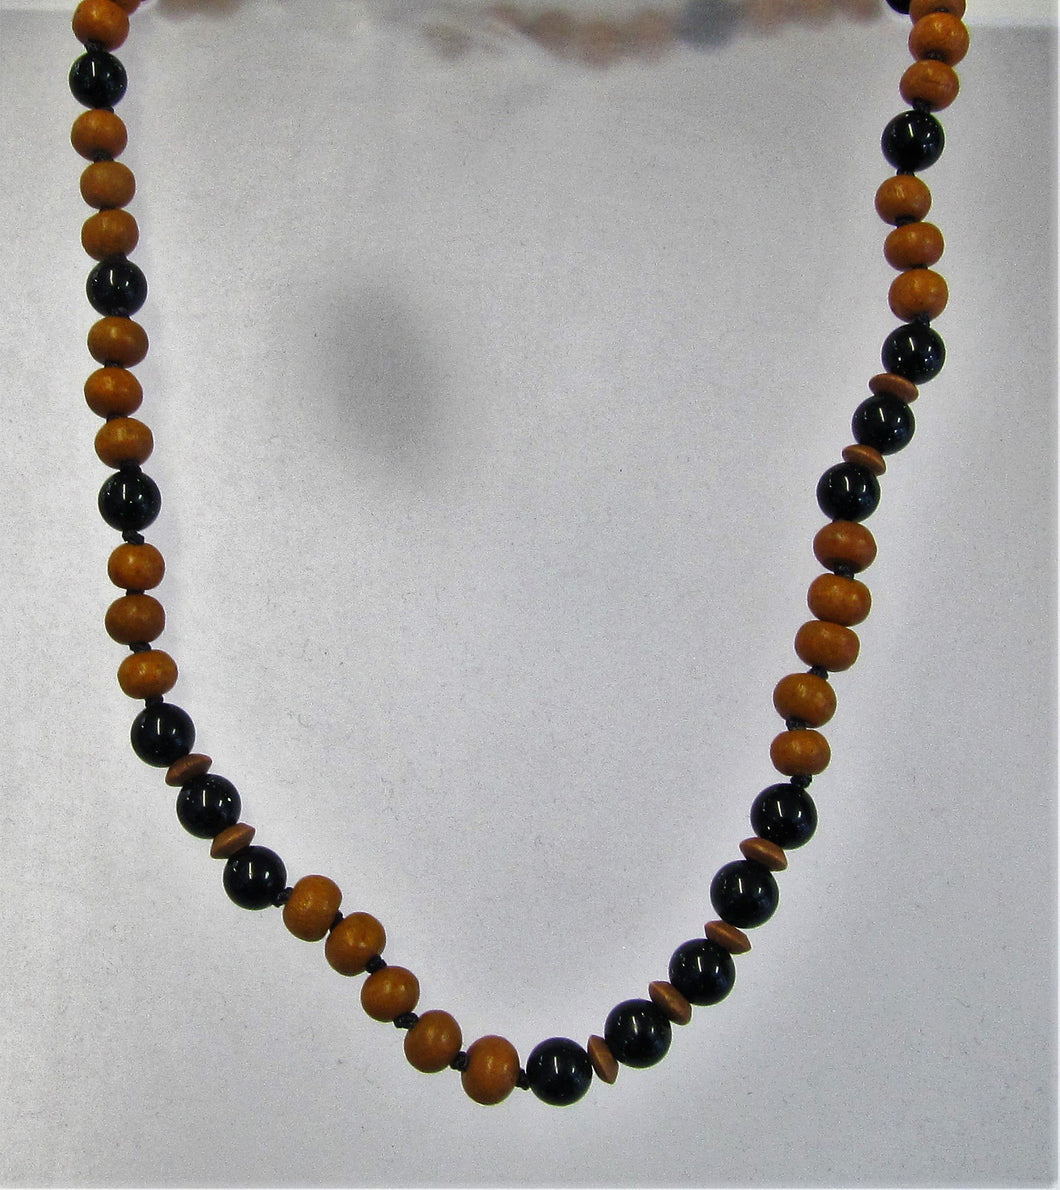 Handcrafted black agate and wood necklace with silver clasp